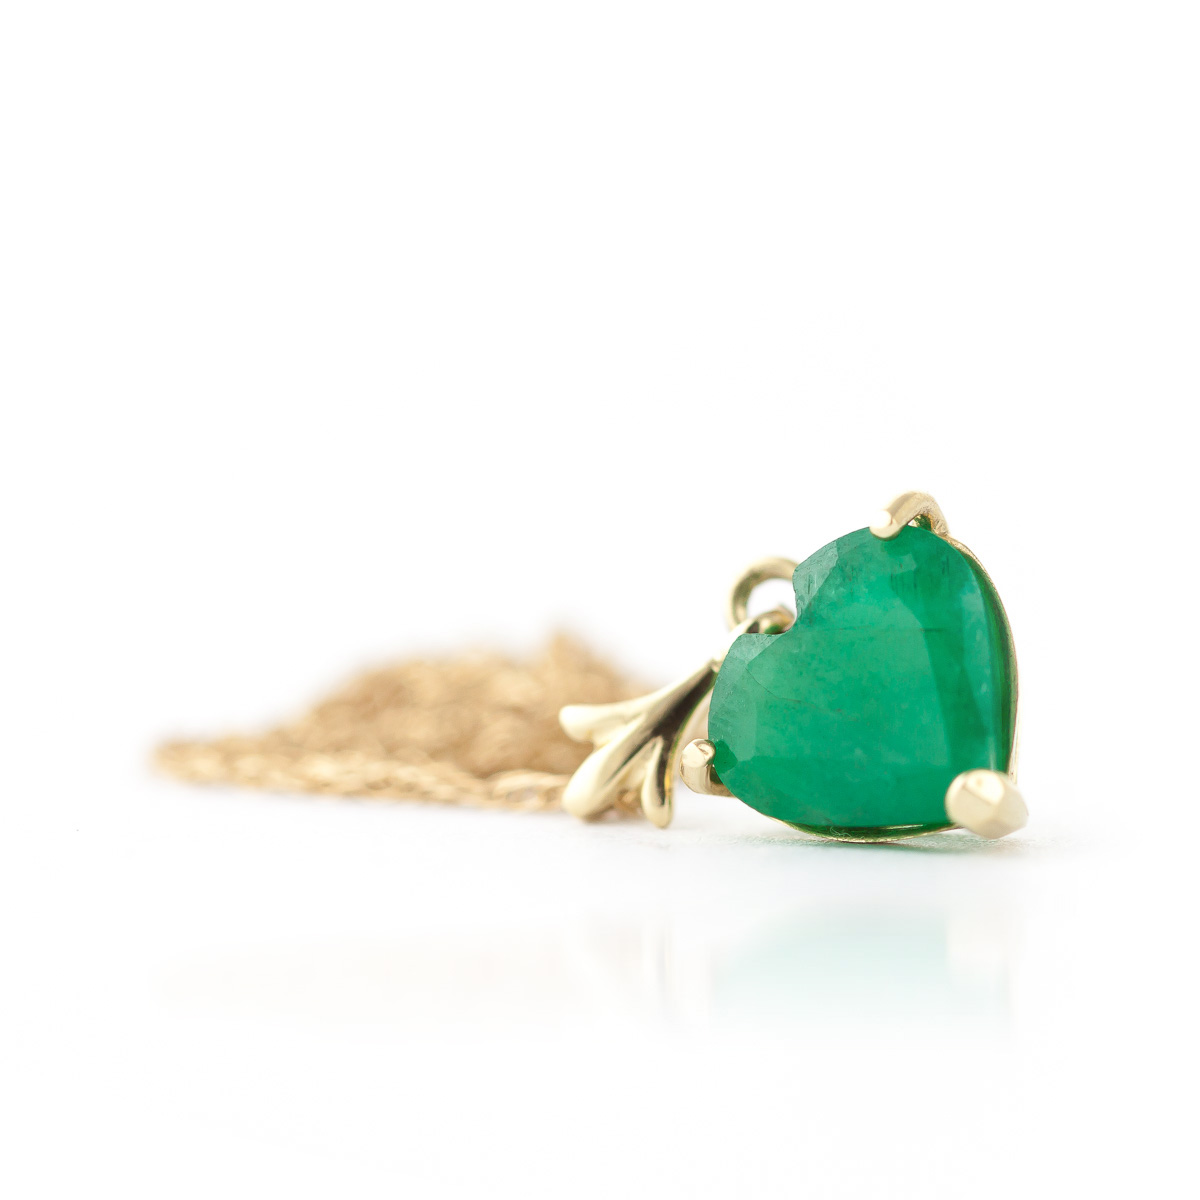 Emerald Heart Pendant Necklace 1.2ct in 14K Gold